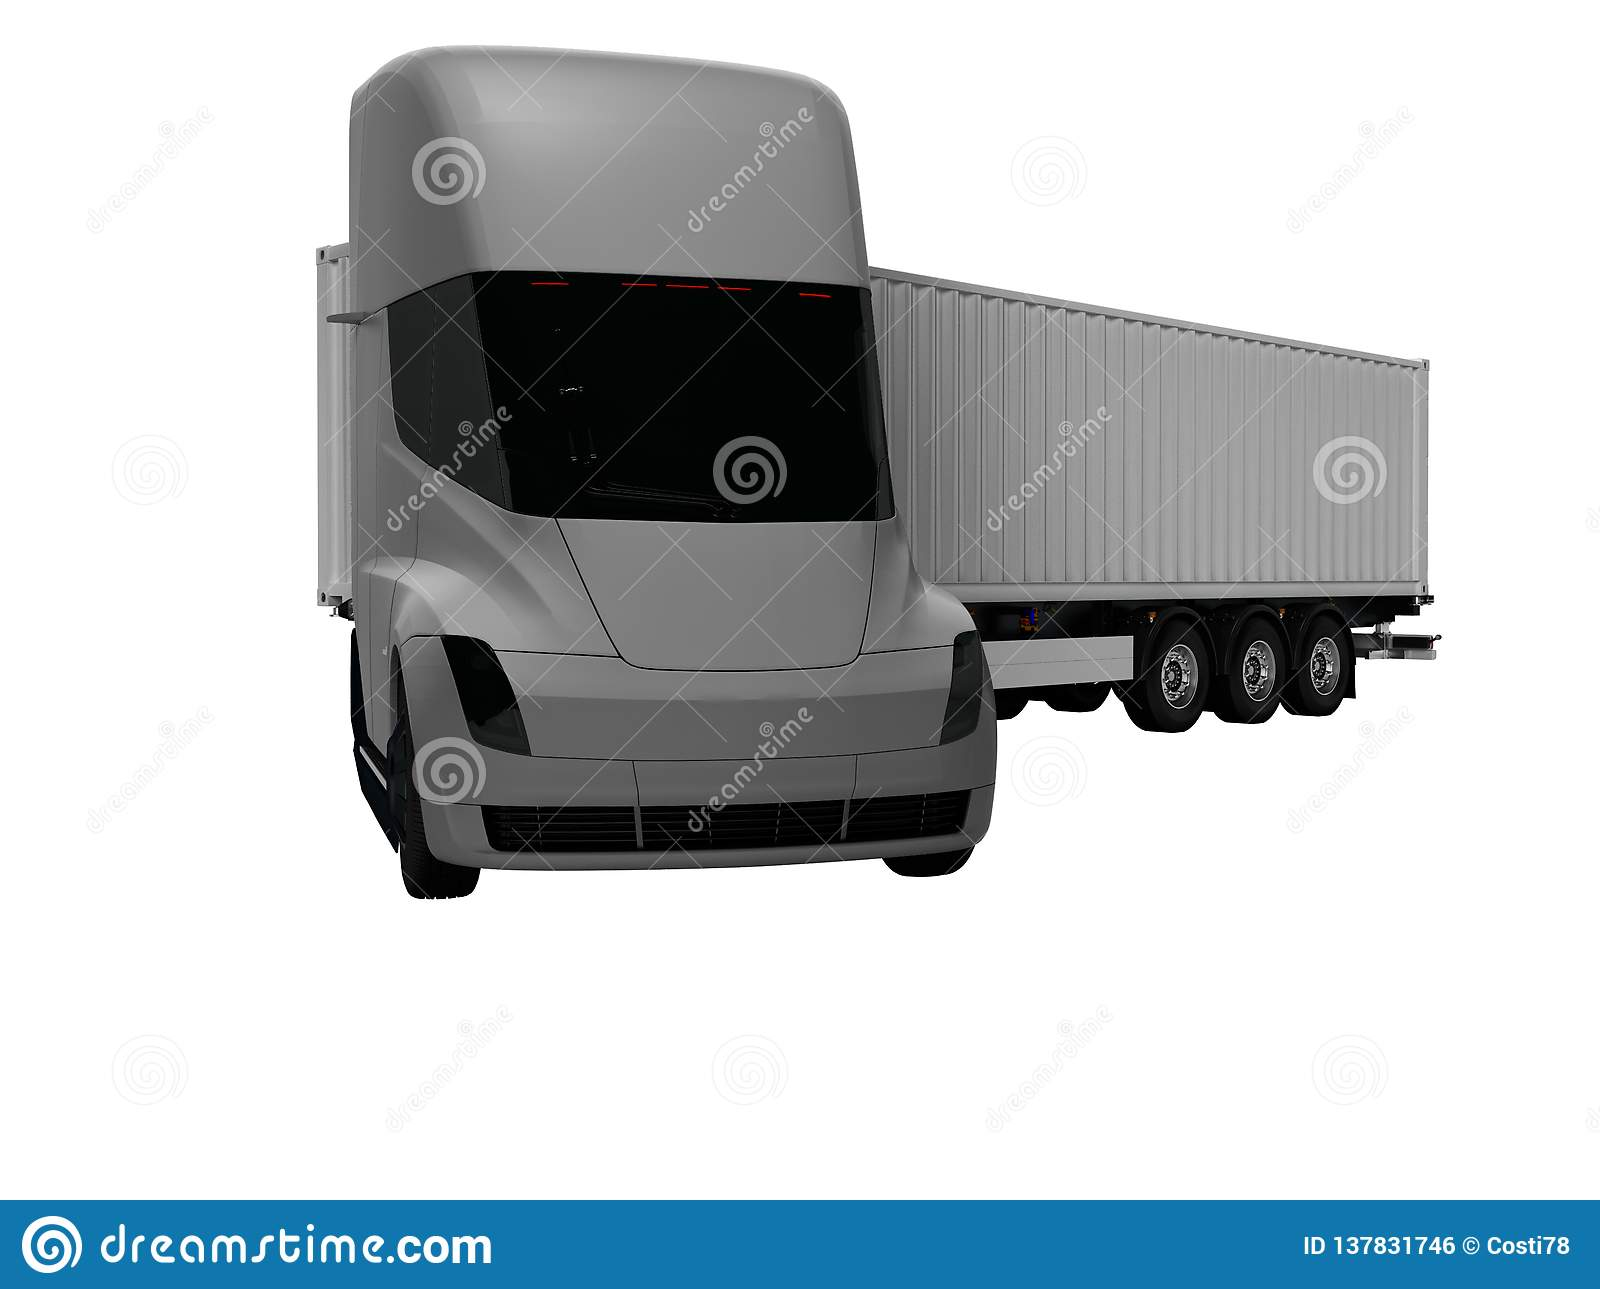 Gray electric tractor with gray trailer for moving goods to different countries 3d render on white background no shadow